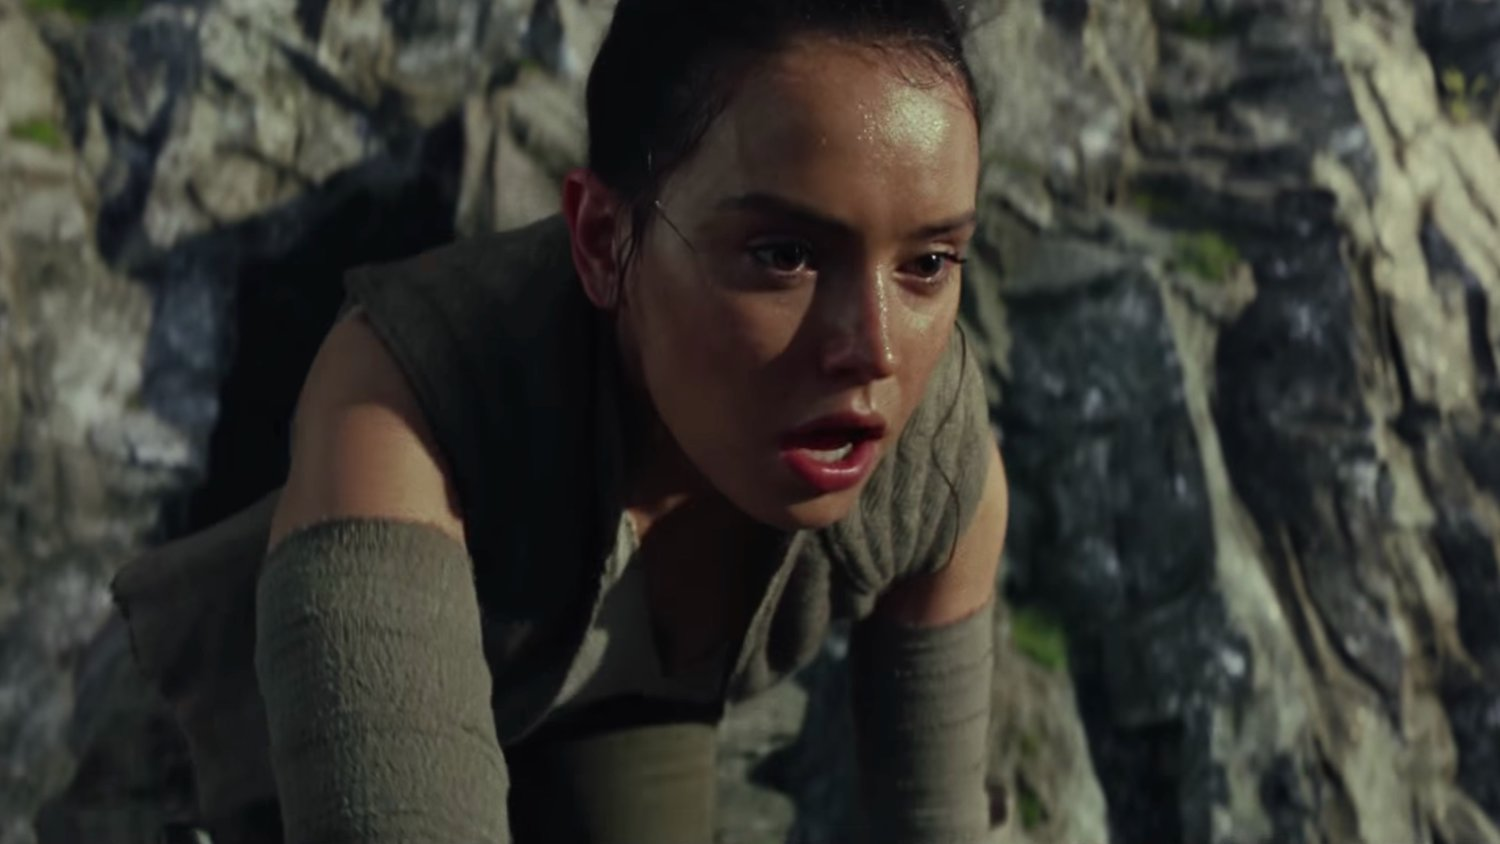 30 Screenshots From the First Trailer for STAR WARS: THE LAST JEDI